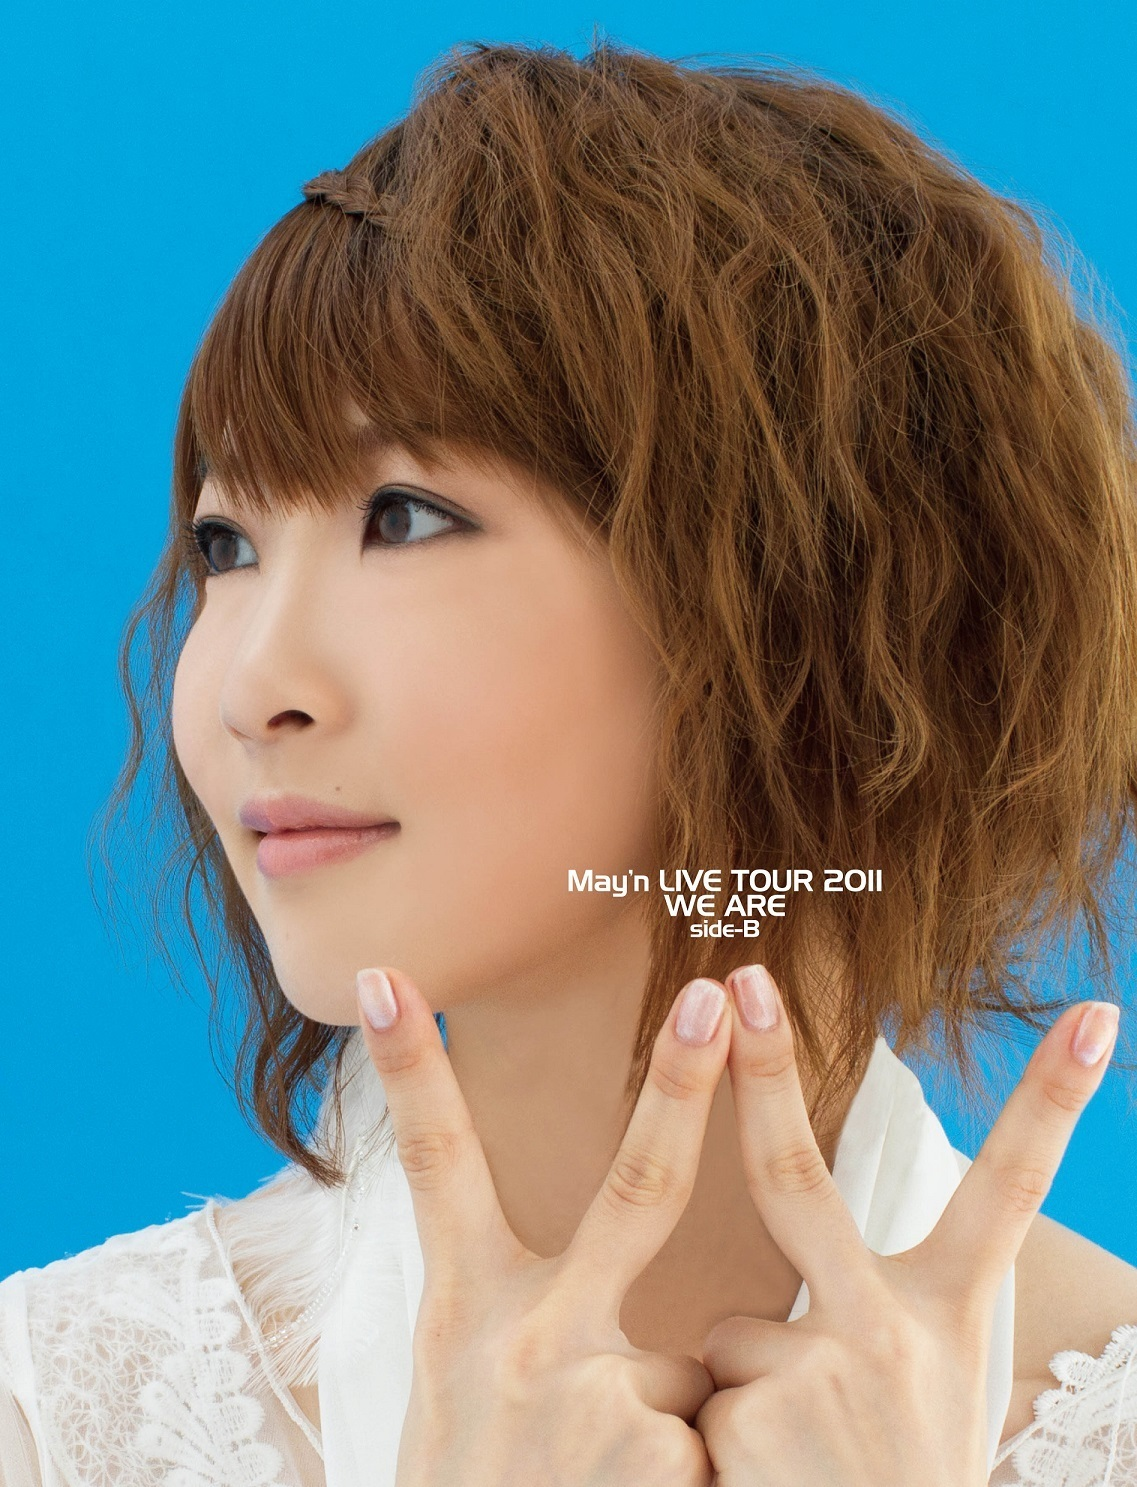 "May'n LIVE TOUR 2011 ""WE ARE"" side-Bパンフレット"